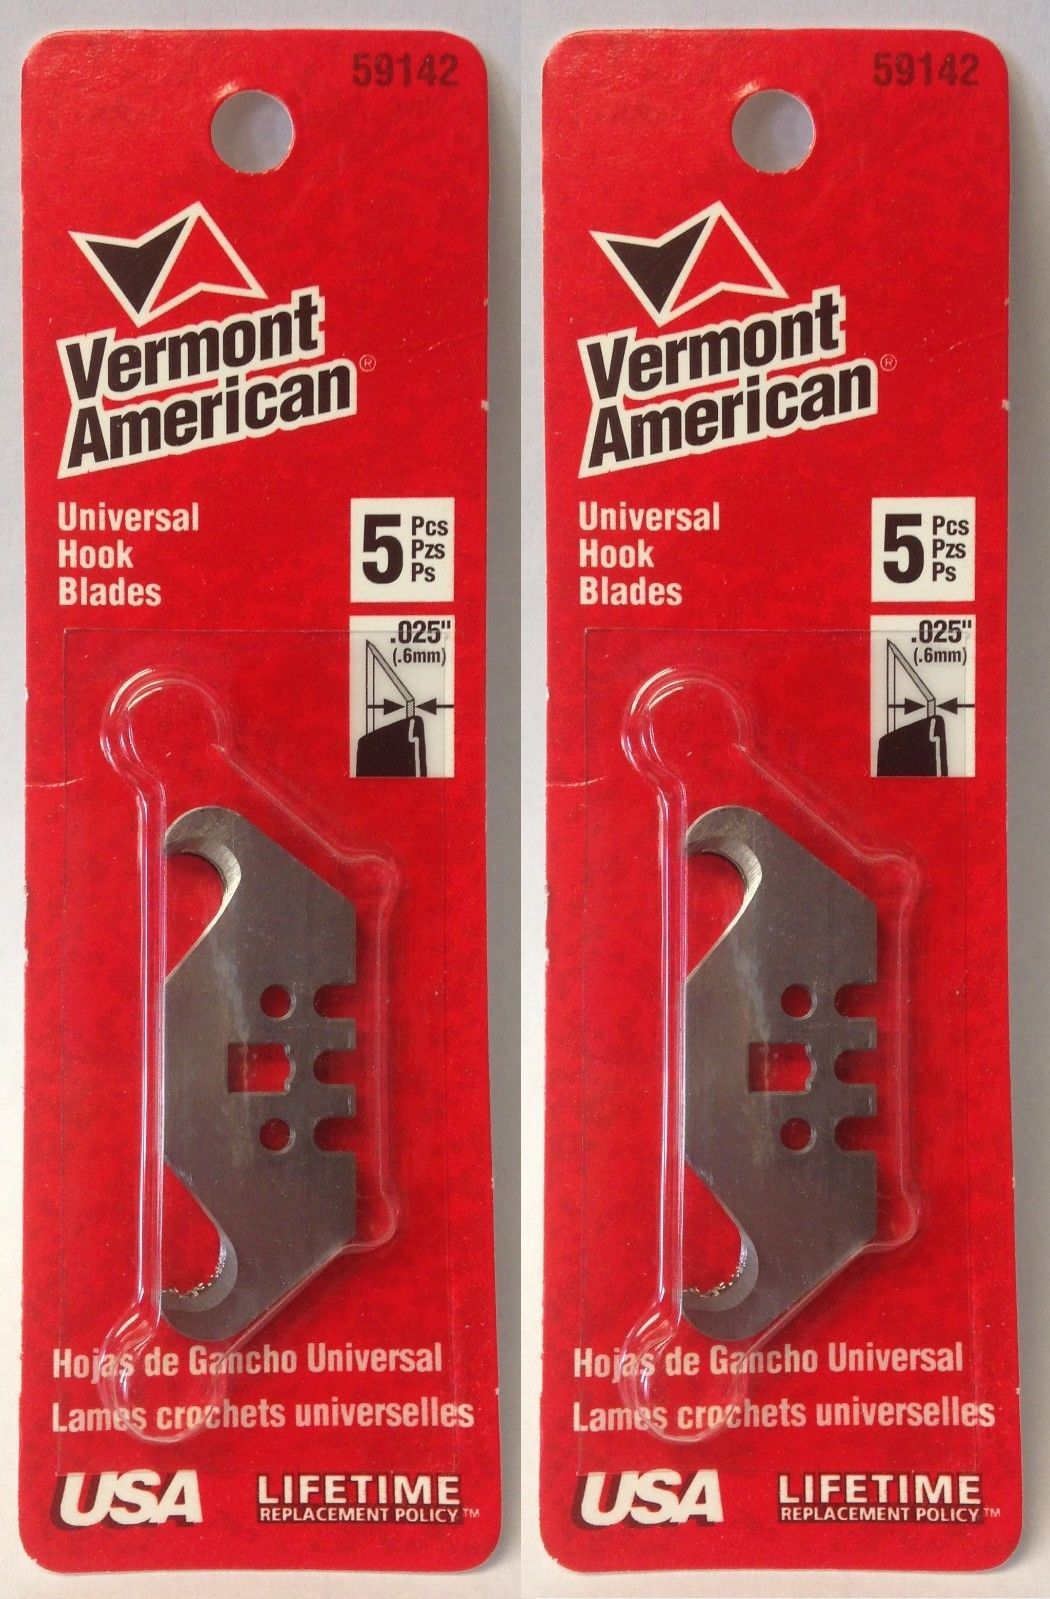 Vermont American 59142 Universal Hook Blades 2 Packs of 5 USA